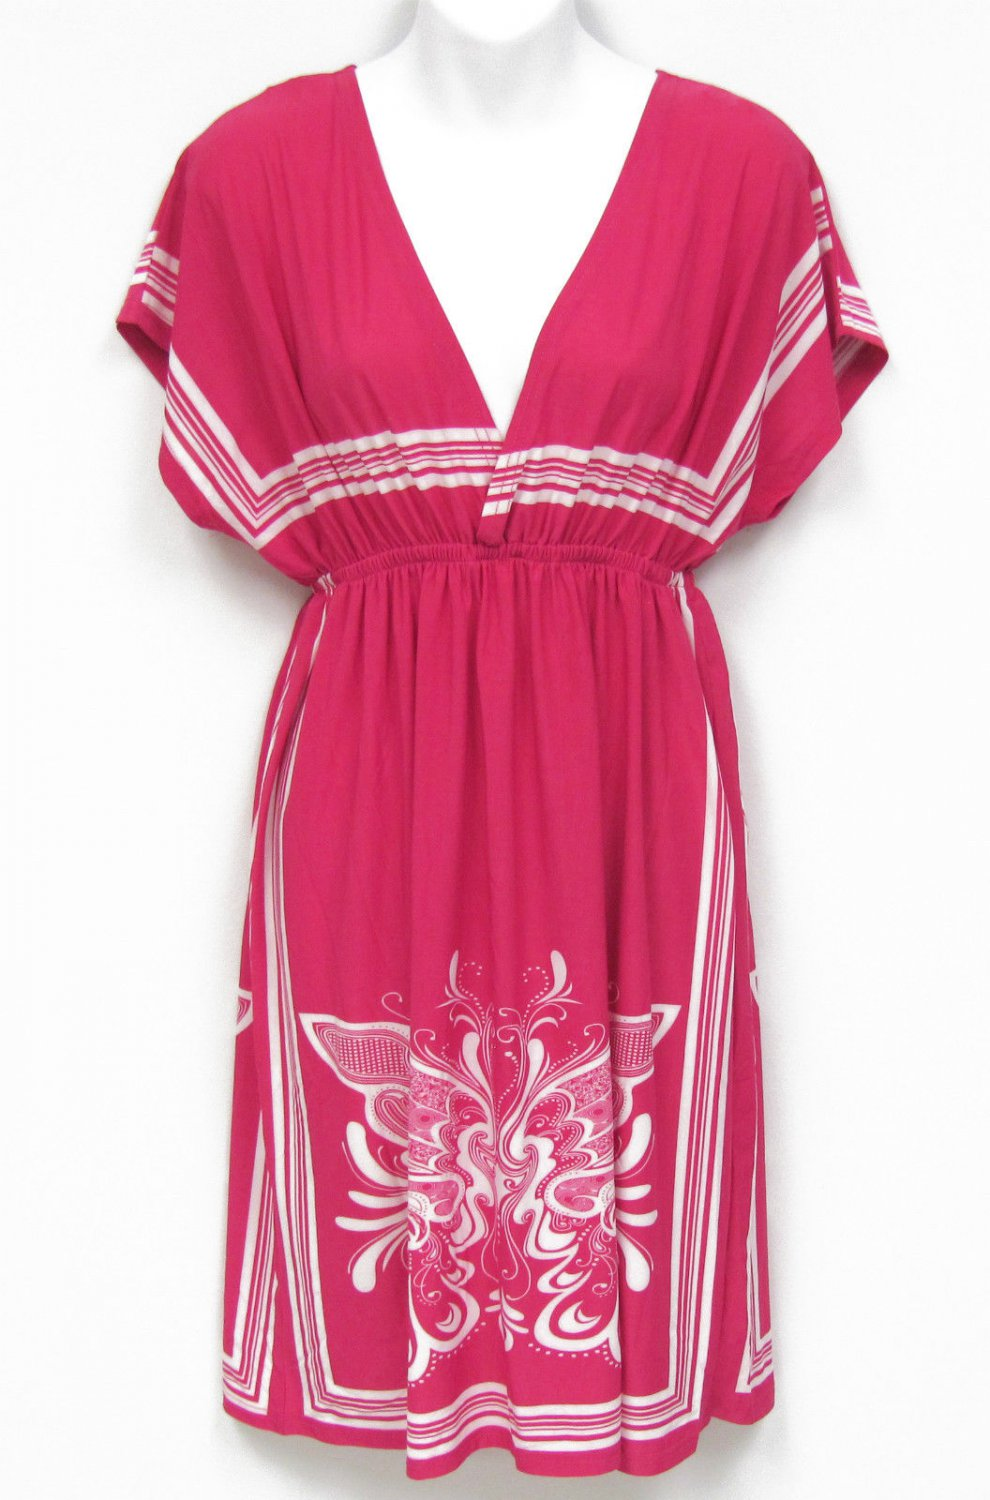 Try Me Once Juniors S Bright Pink and White Empire Tunic Dress Butterfly Print